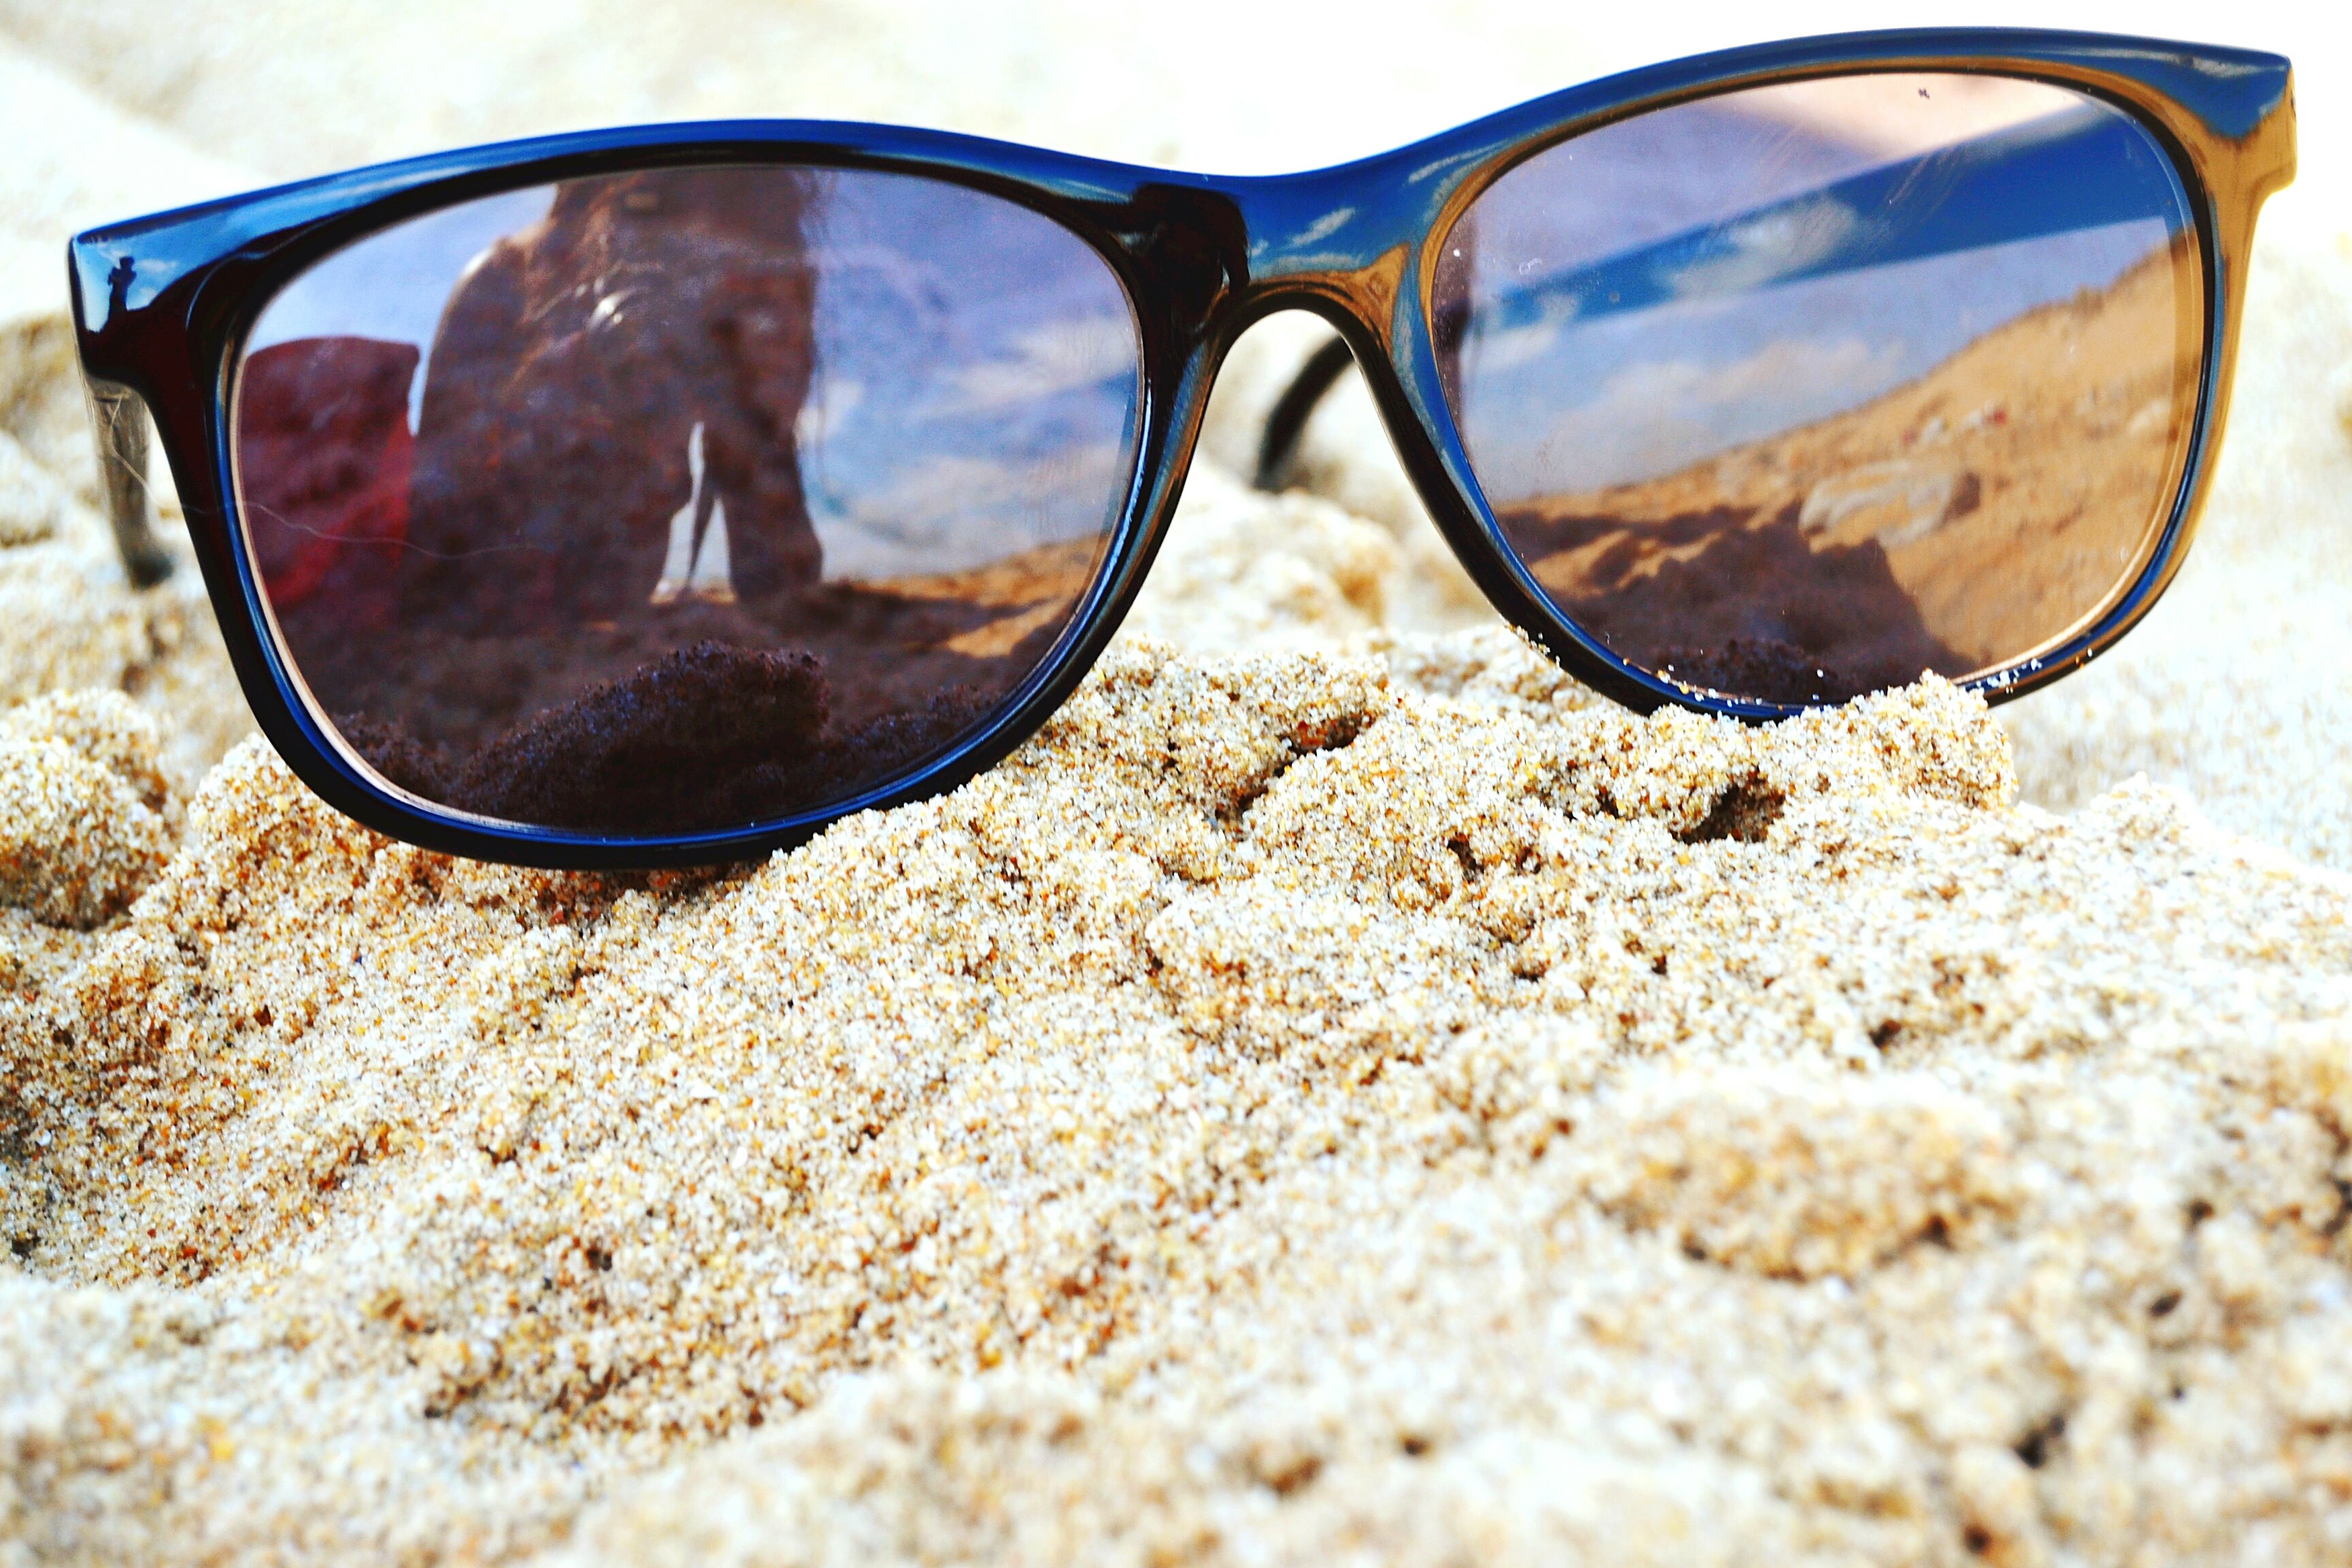 reflection, transparent, sunglasses, beach, glass - material, close-up, sand, surface level, tranquility, vision, water, non-urban scene, nature, shore, glasses, scenics, eyesight, tranquil scene, no people, soil, beauty in nature, sea, cloud - sky